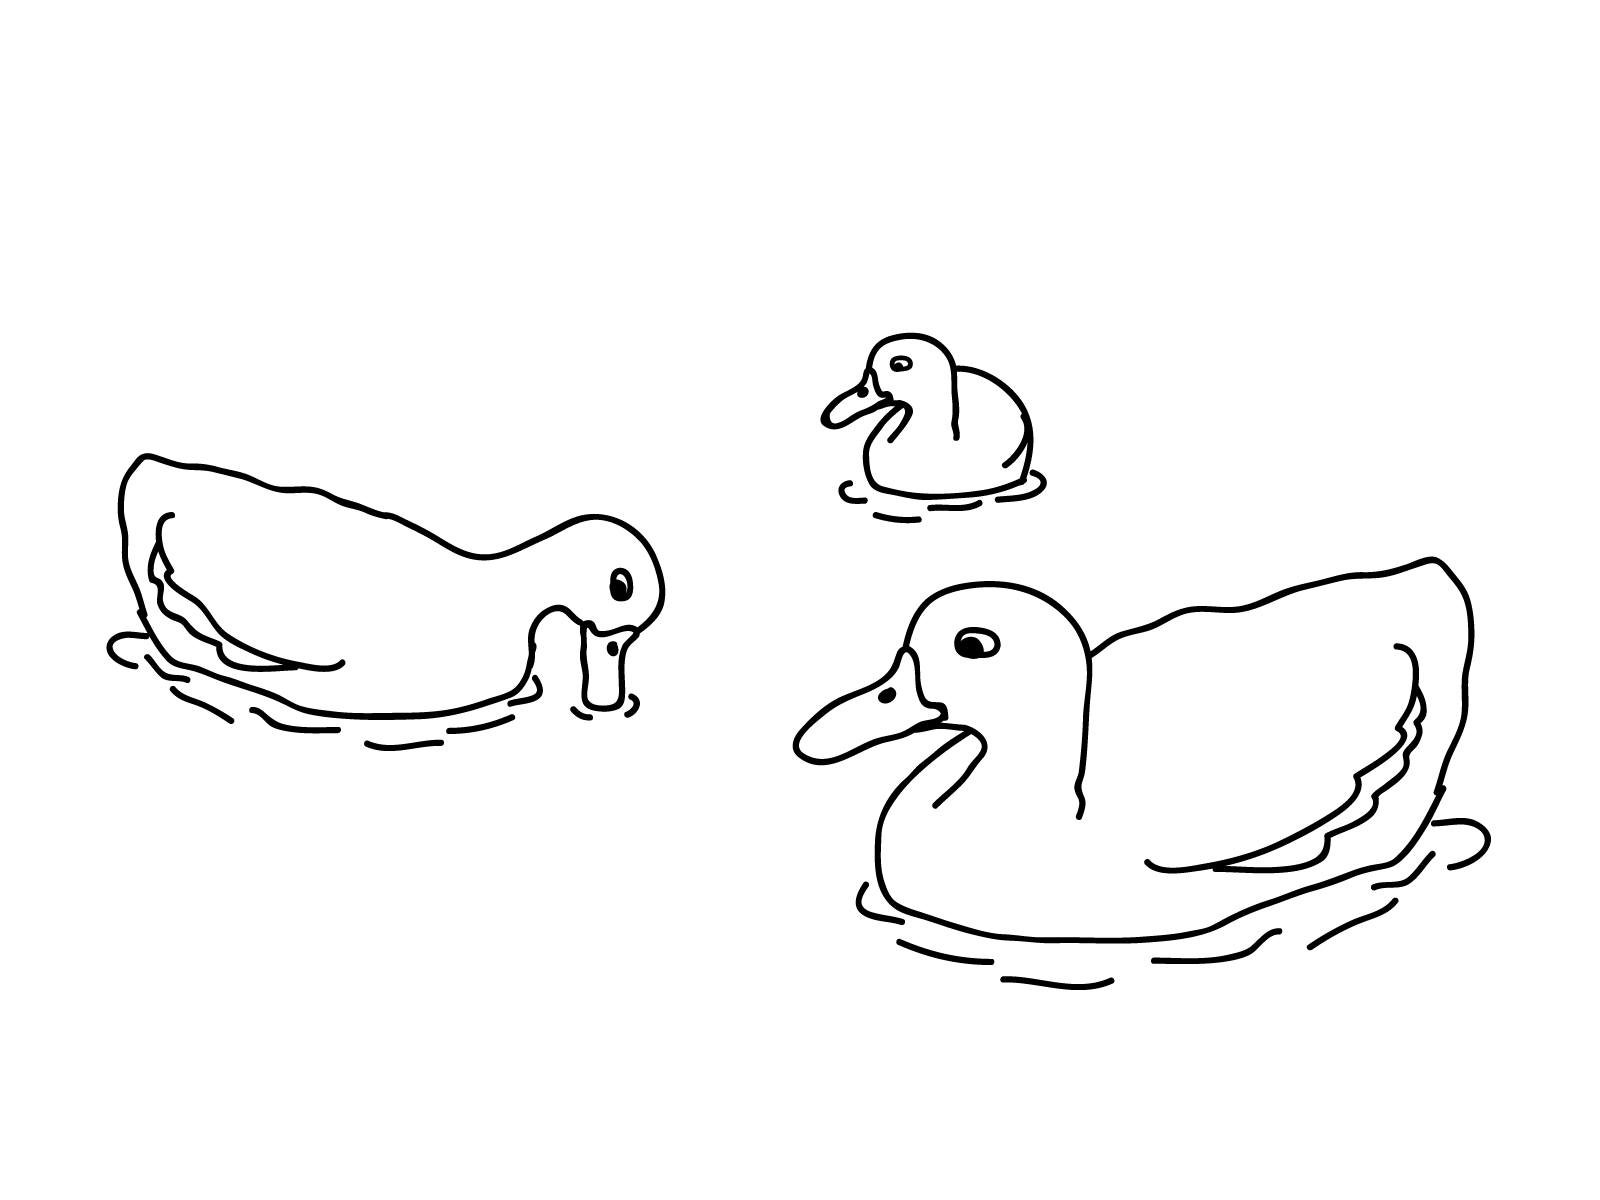 Printable Duck Coloring Pages For Kids